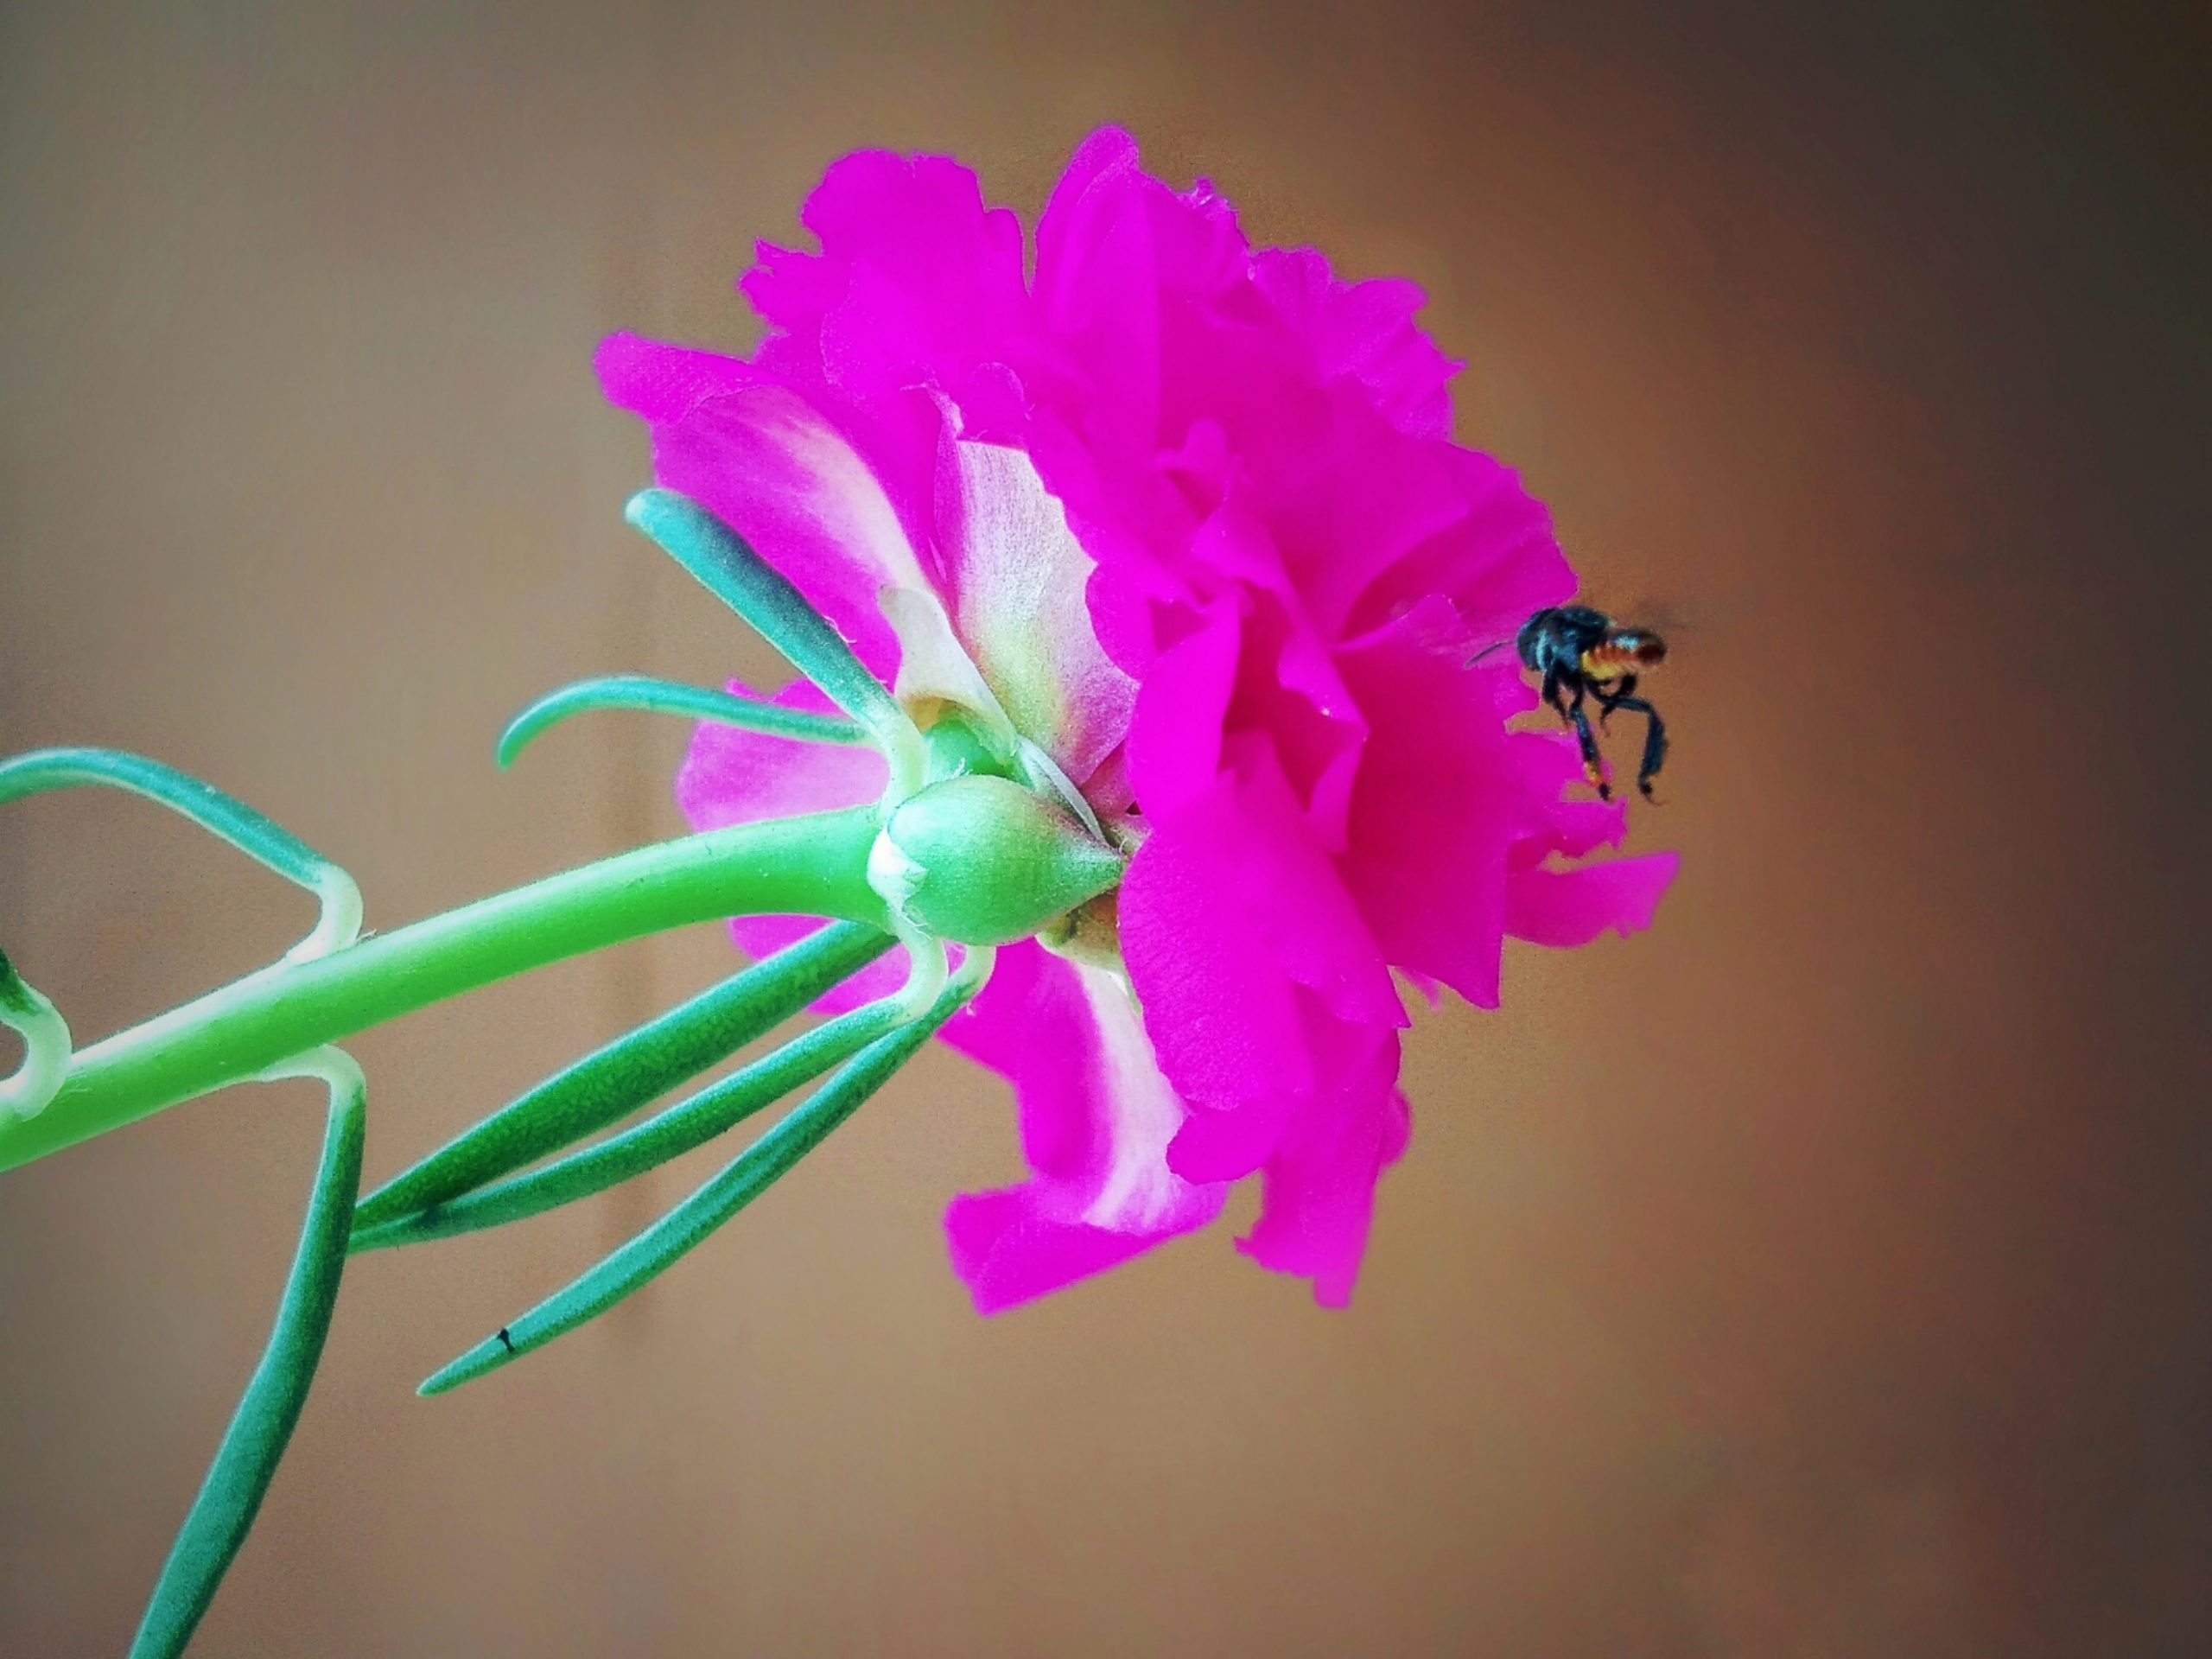 An insect on a pink flower